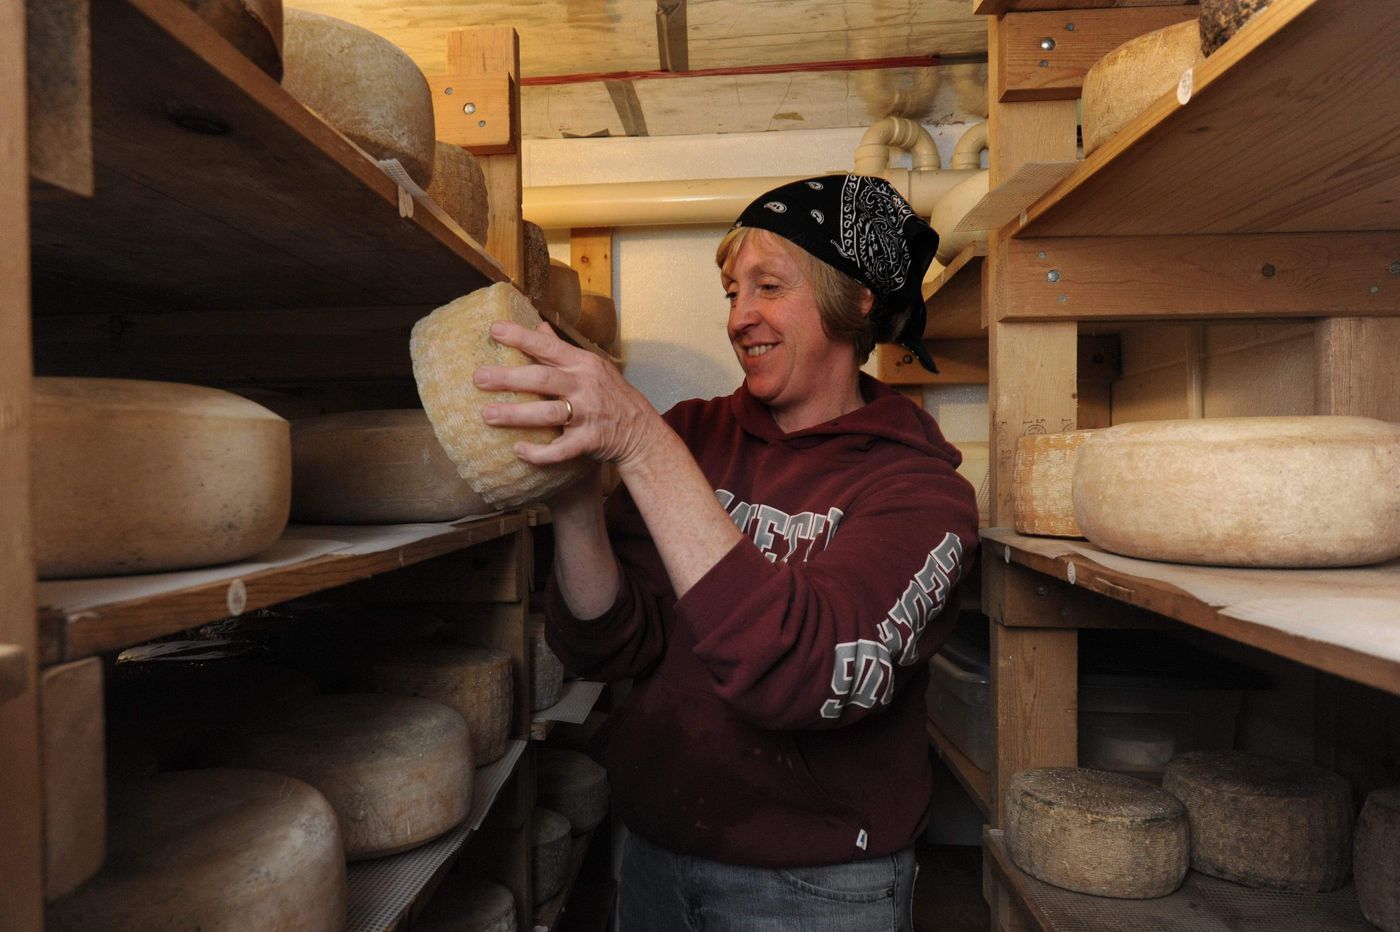 This Chester County cheesemaker took tastings to Zoom to offset pandemic losses